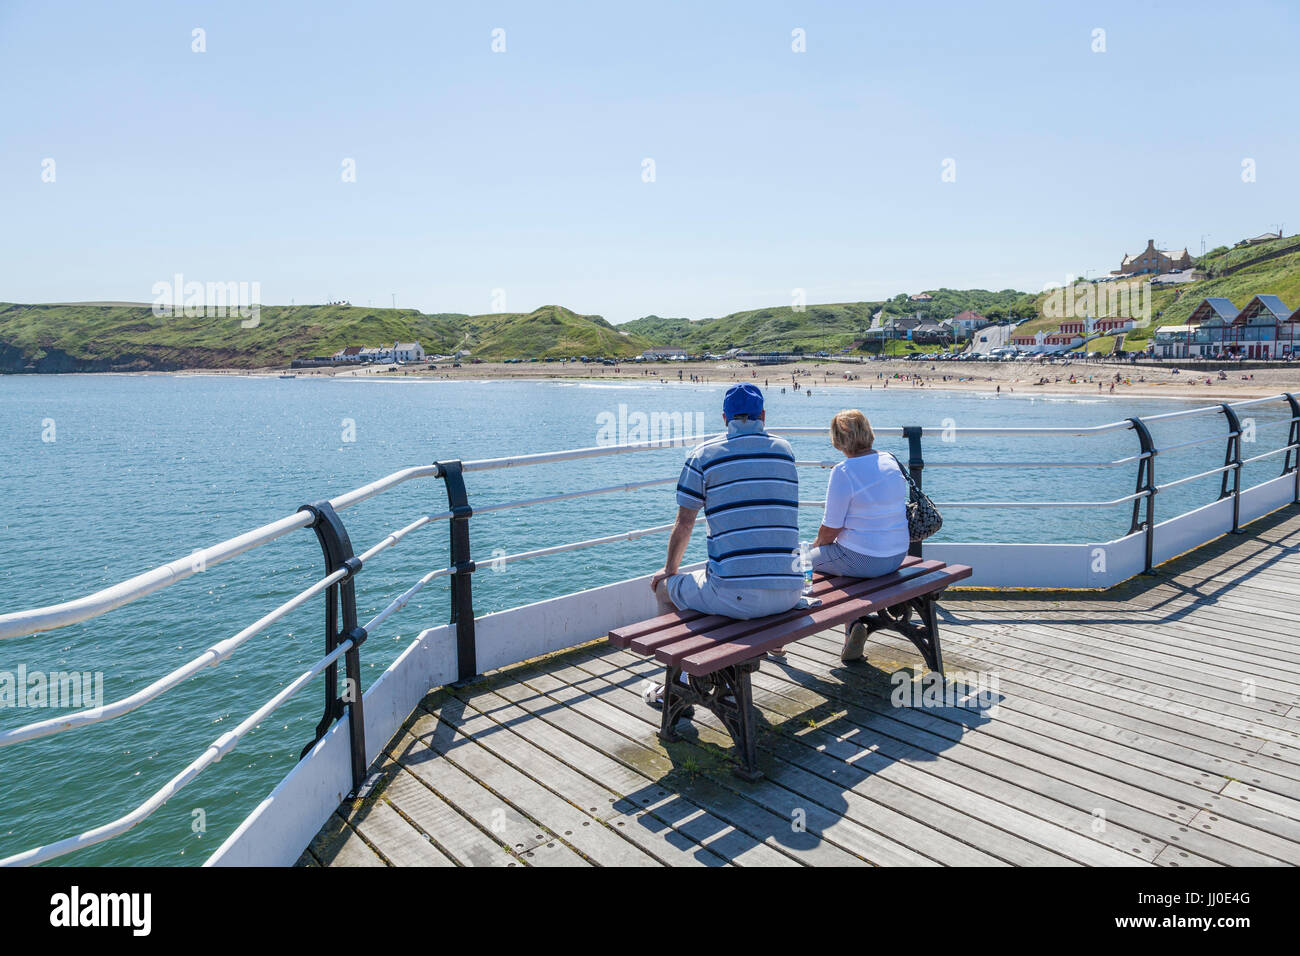 A man and woman sat on a bench on the pier looking out to sea at Saltburn by the Sea,England,UK Stock Photo